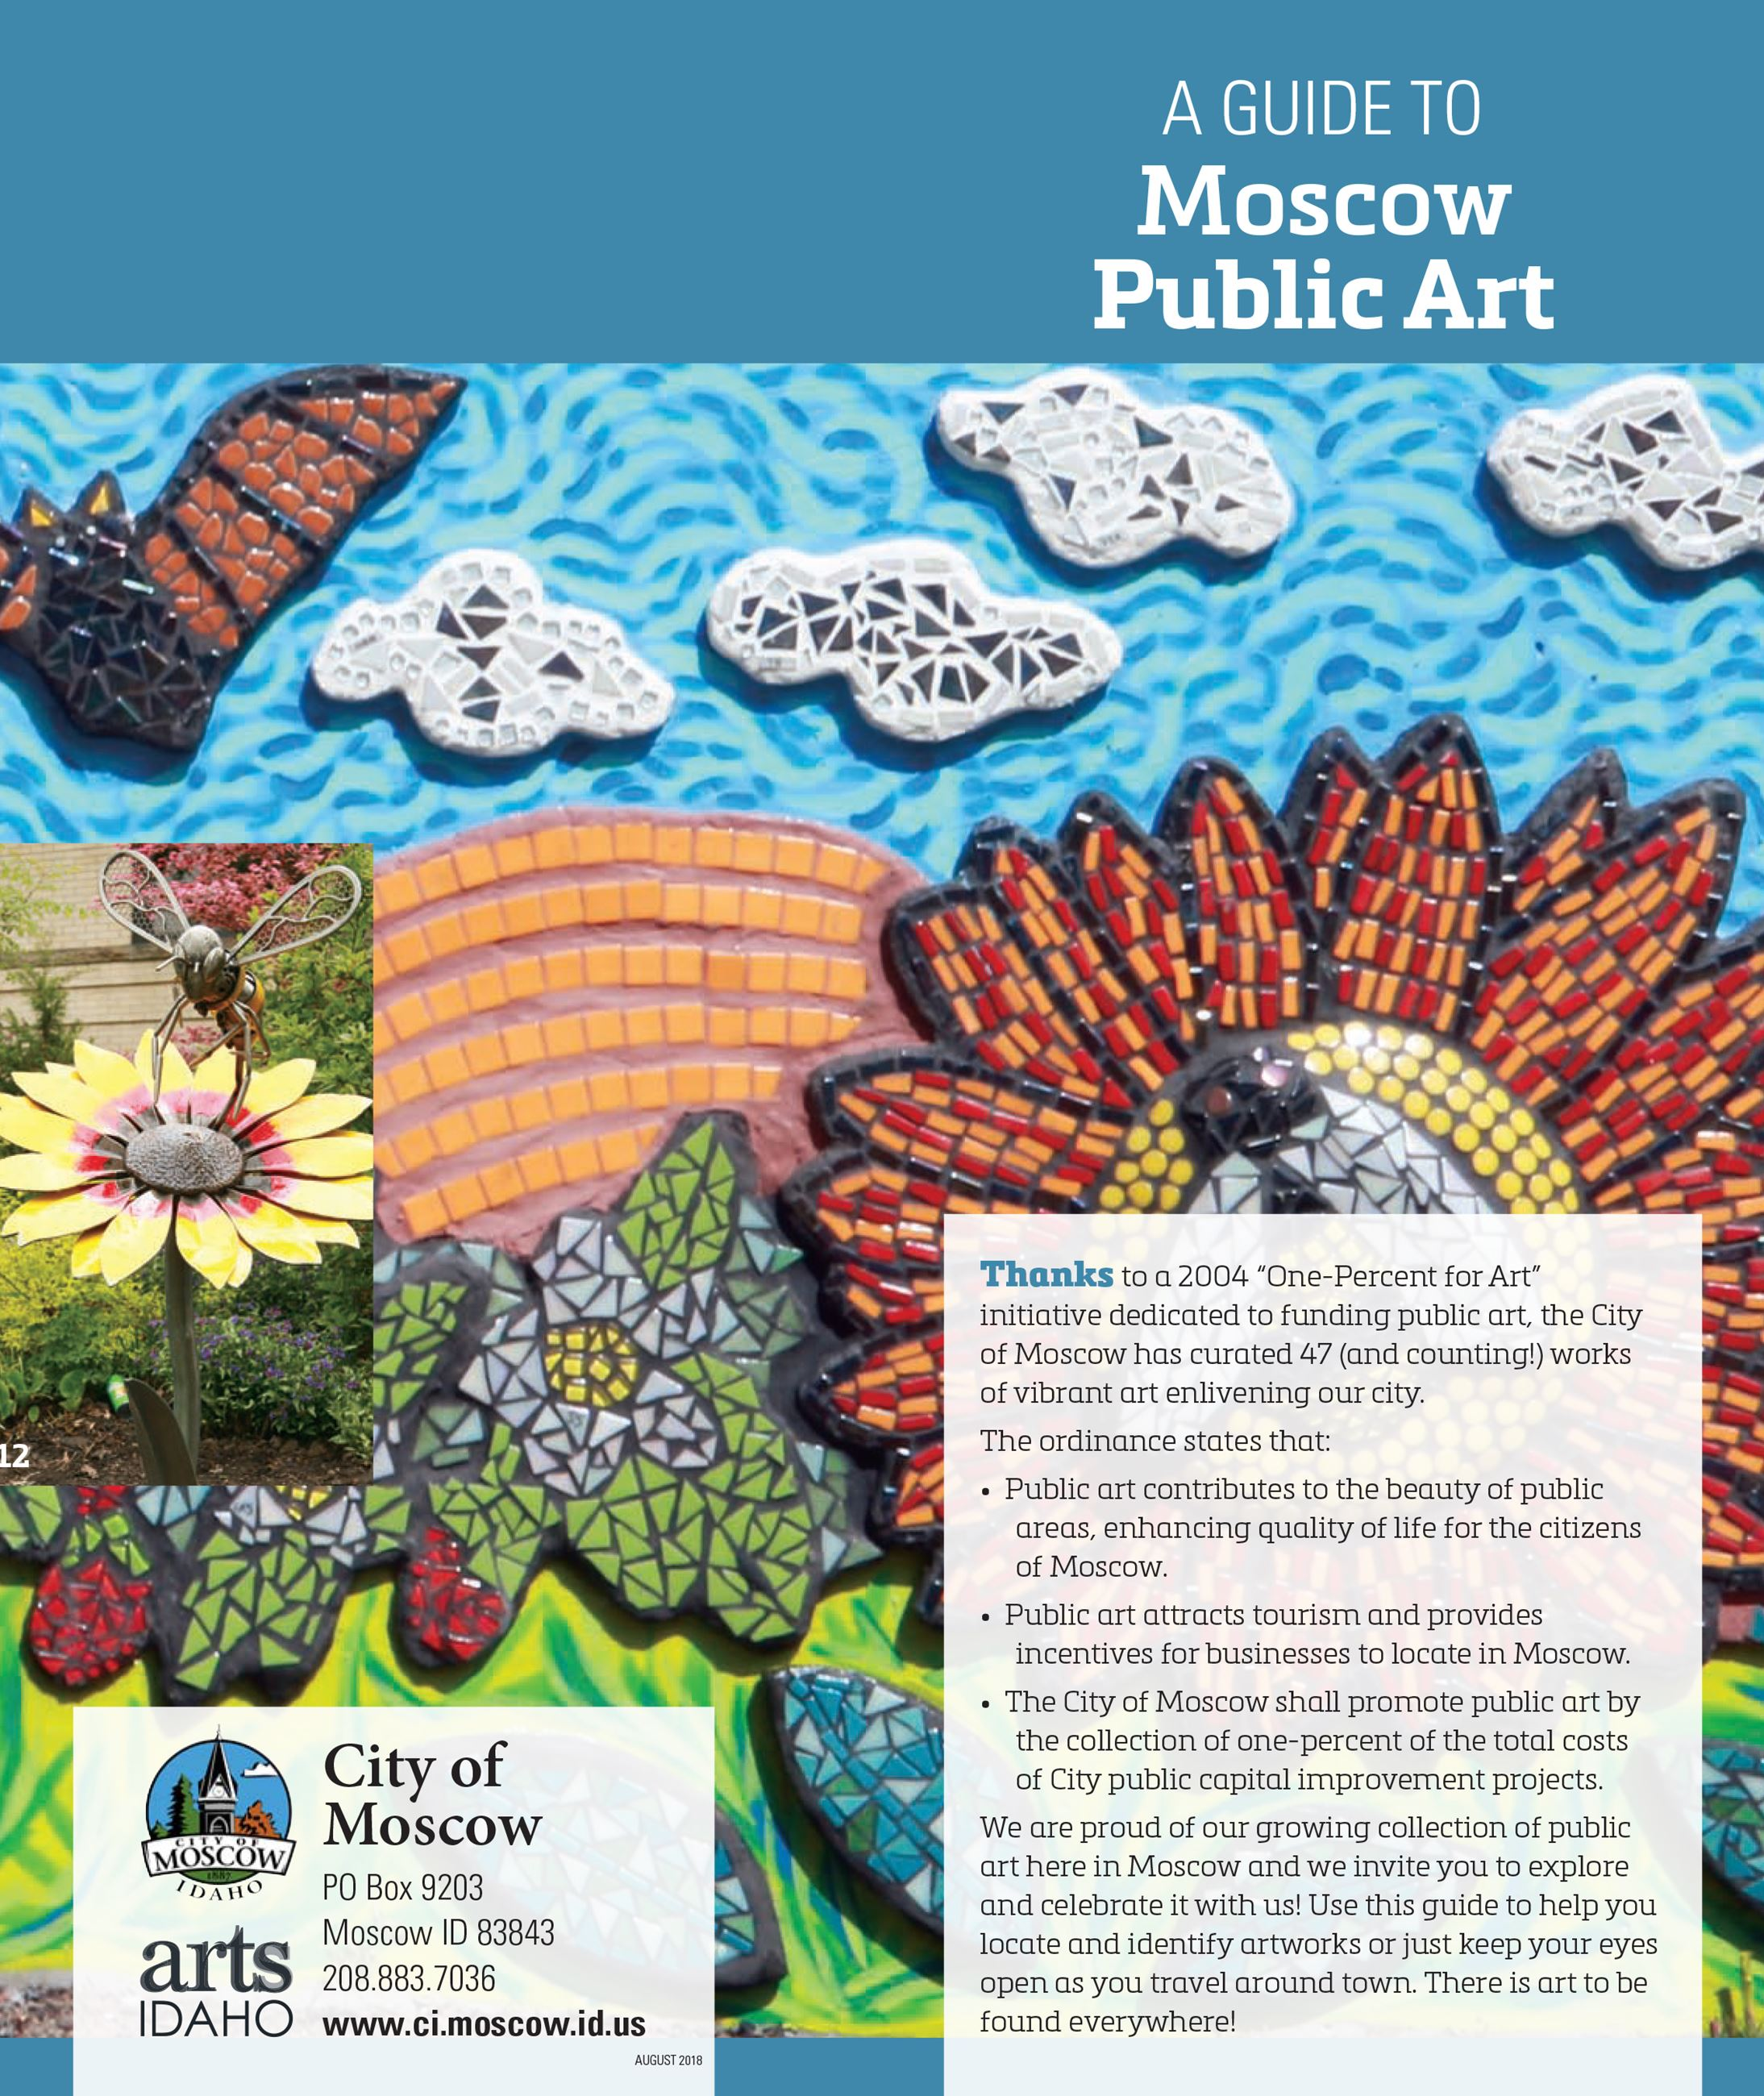 Cover image for Moscow's Public Art Guide depicting the tile mosaic at the Library and details